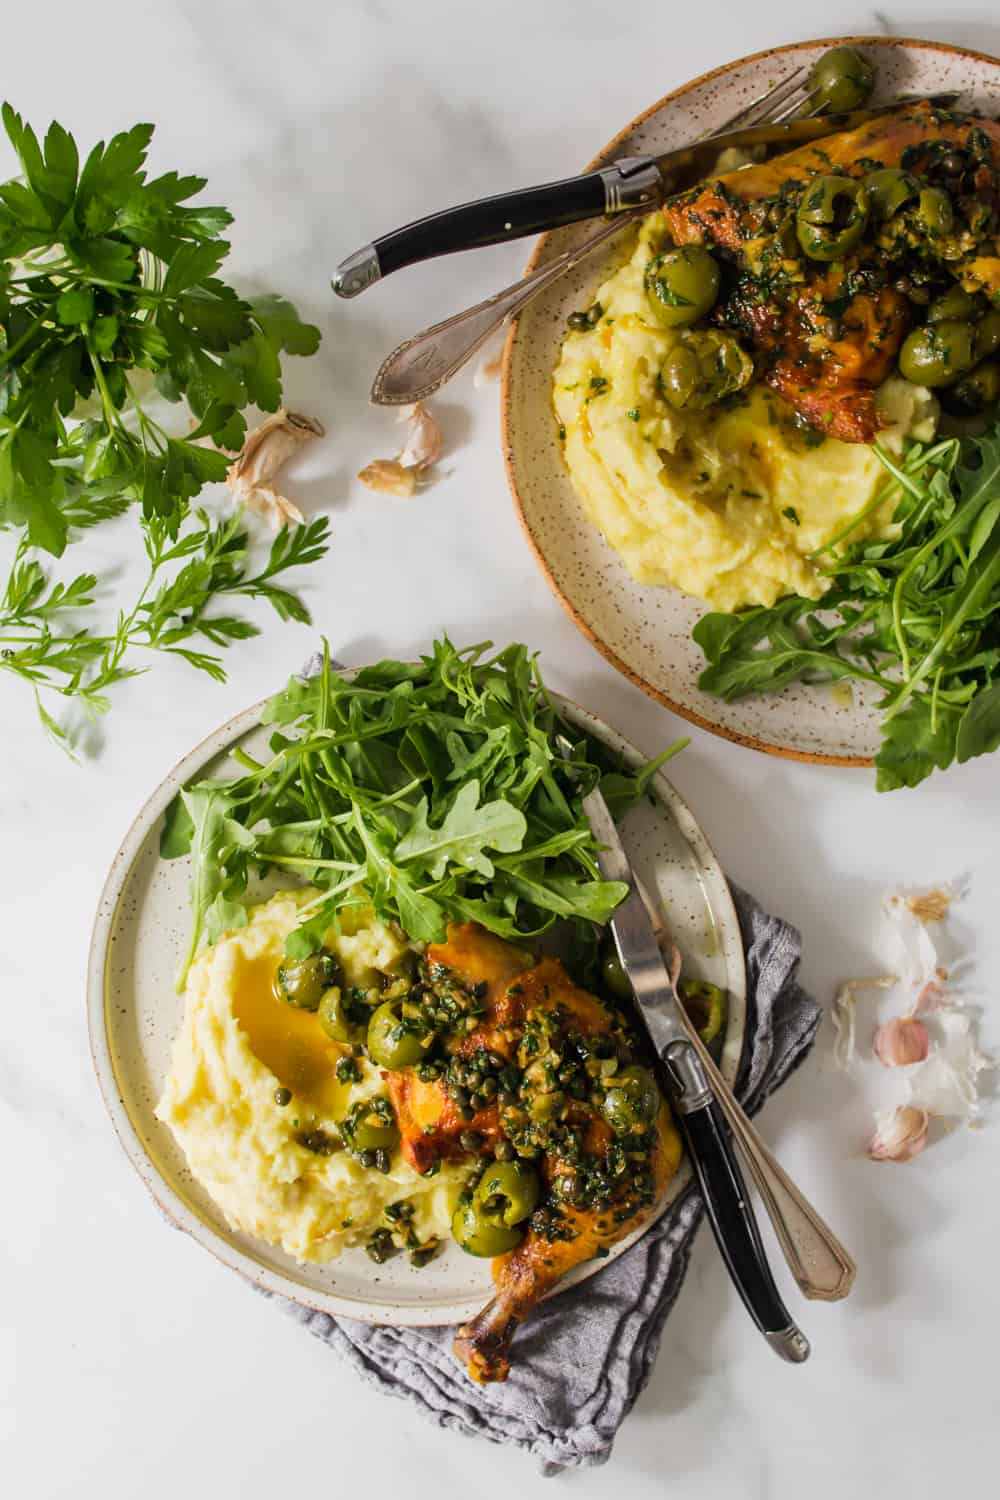 2 plates with chicken, mashed potatoes, and fresh arugula.